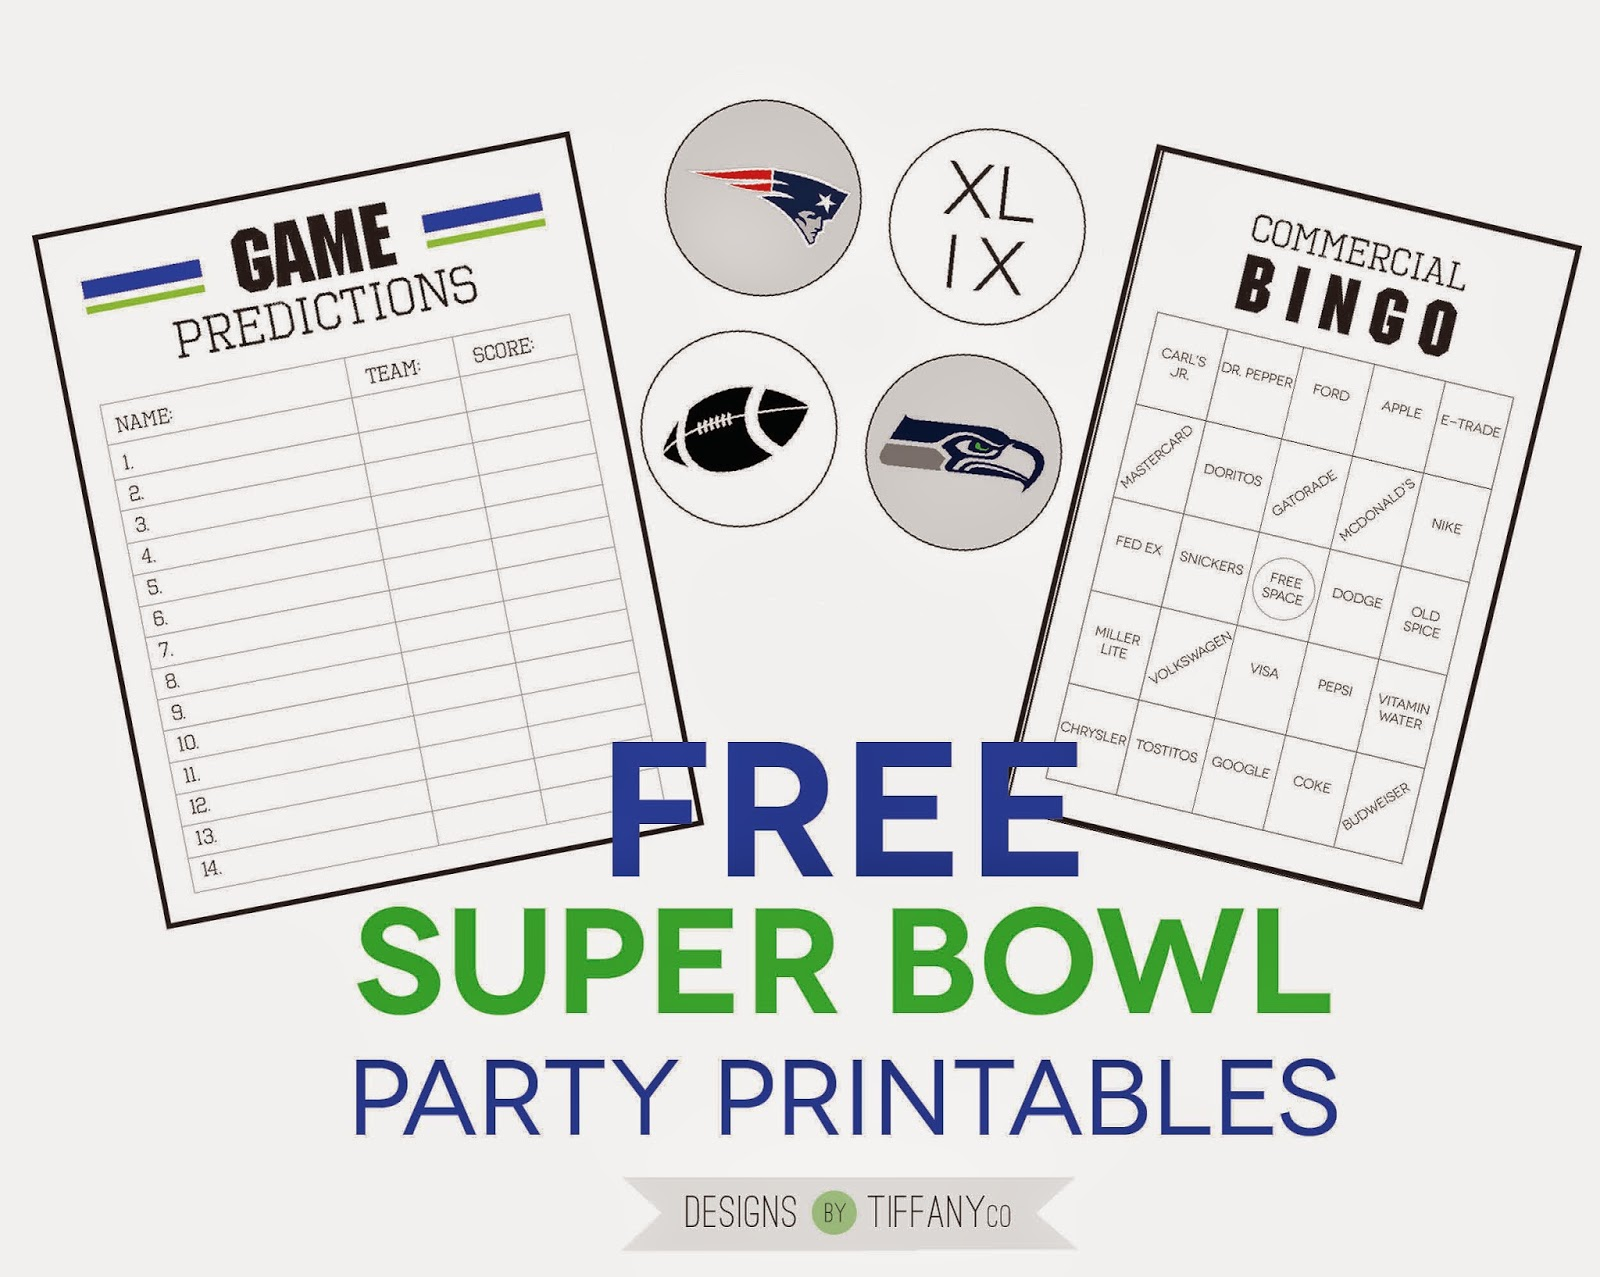 Freebies Super Bowl Party Printables